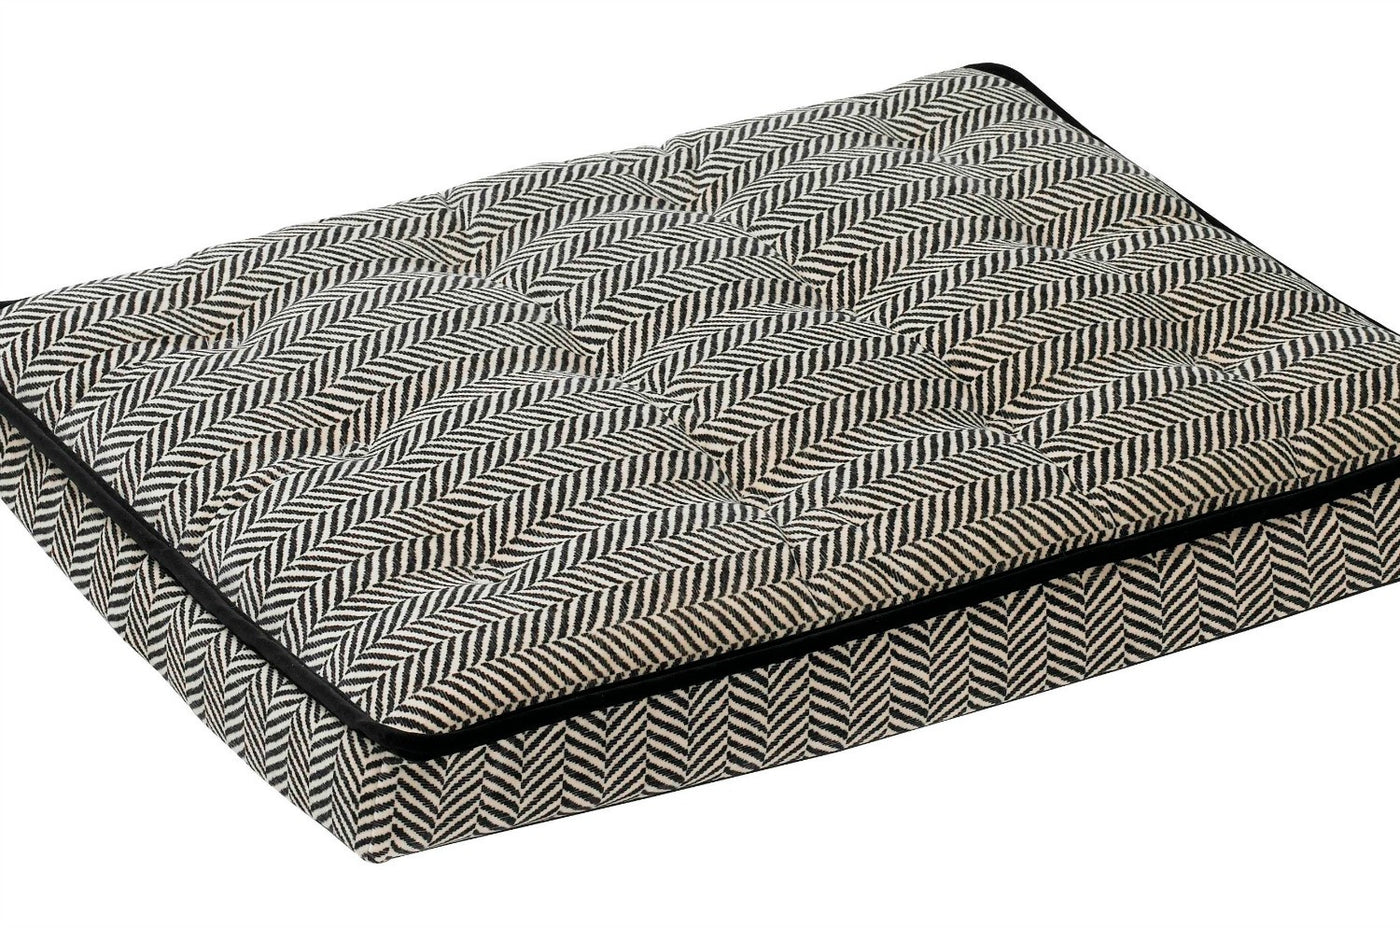 Herringbone Lux Crate Mattress